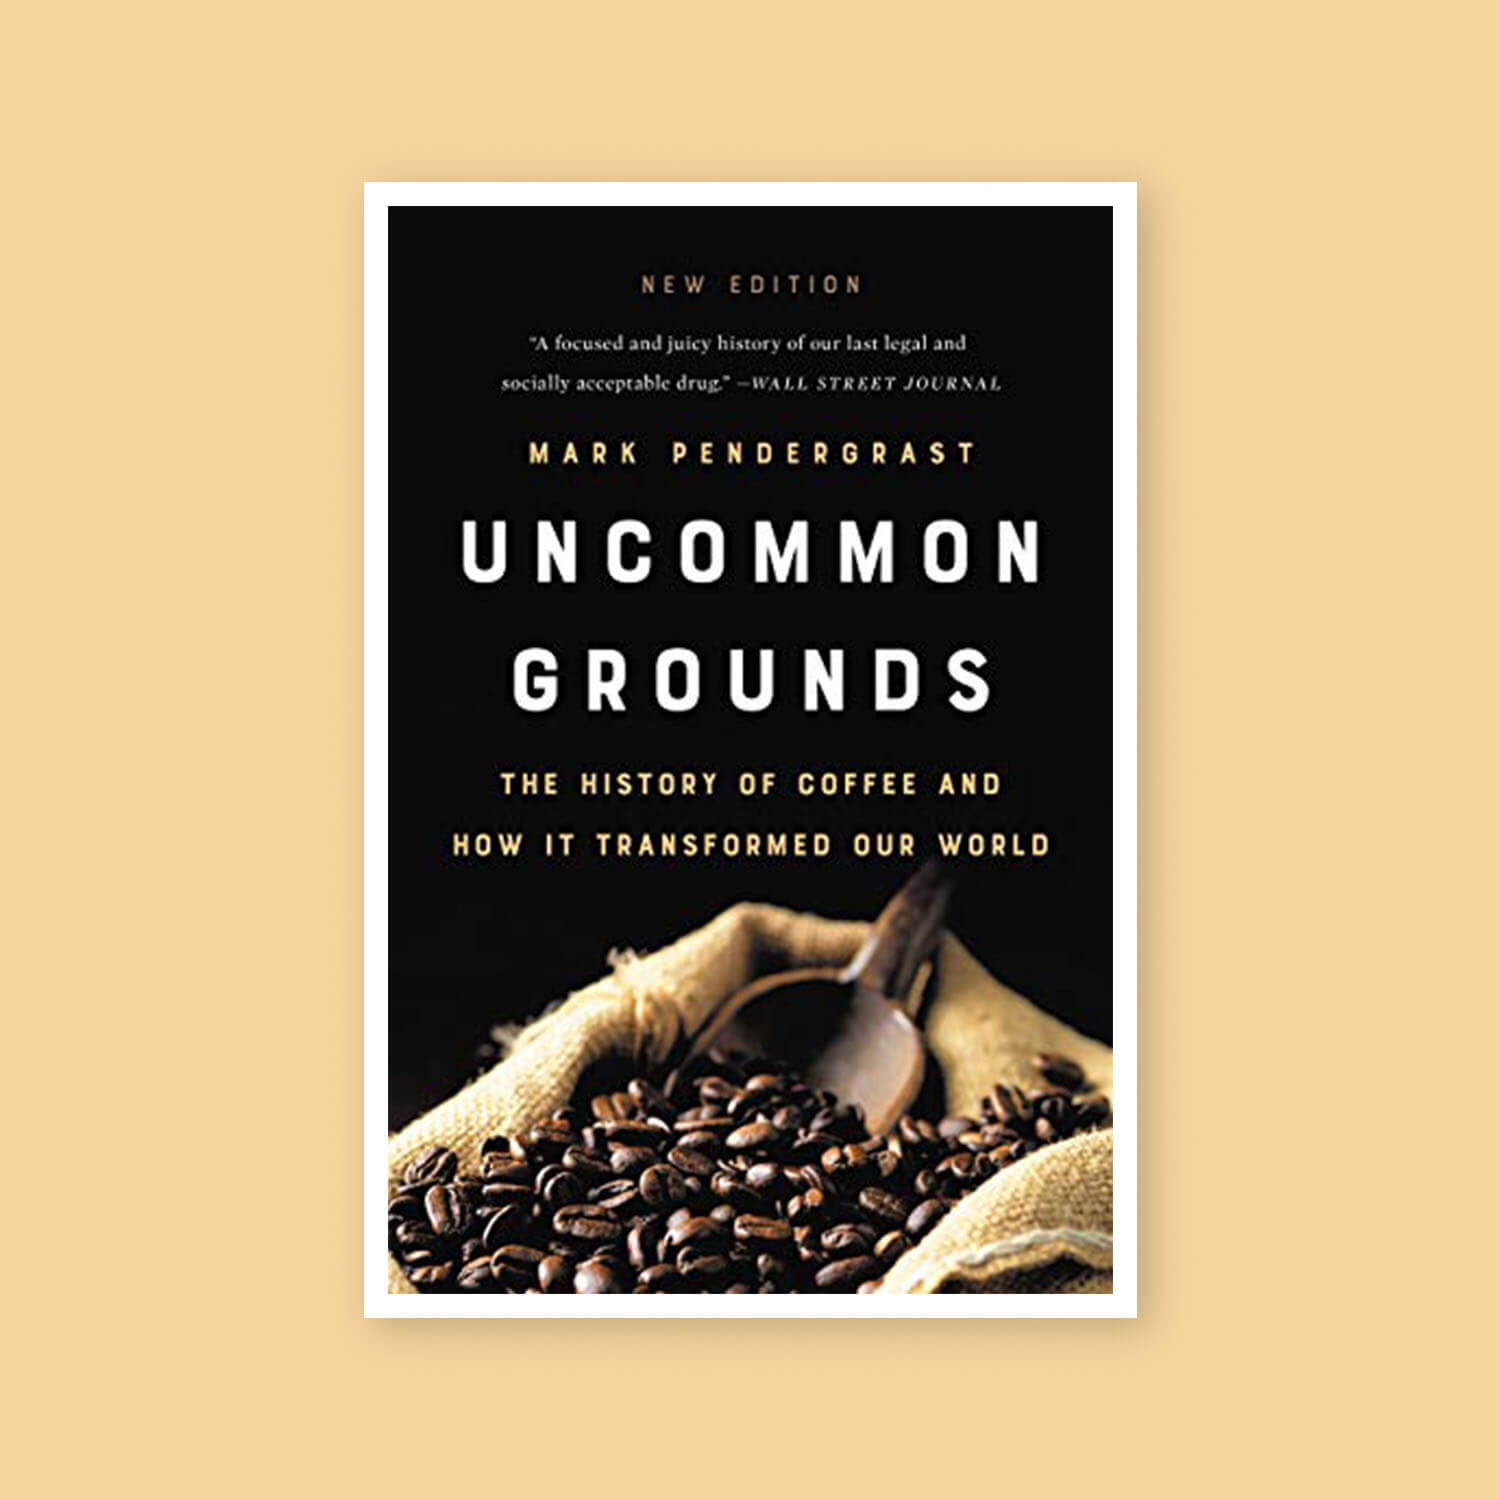 Uncommon Grounds - Goldleaf Book List